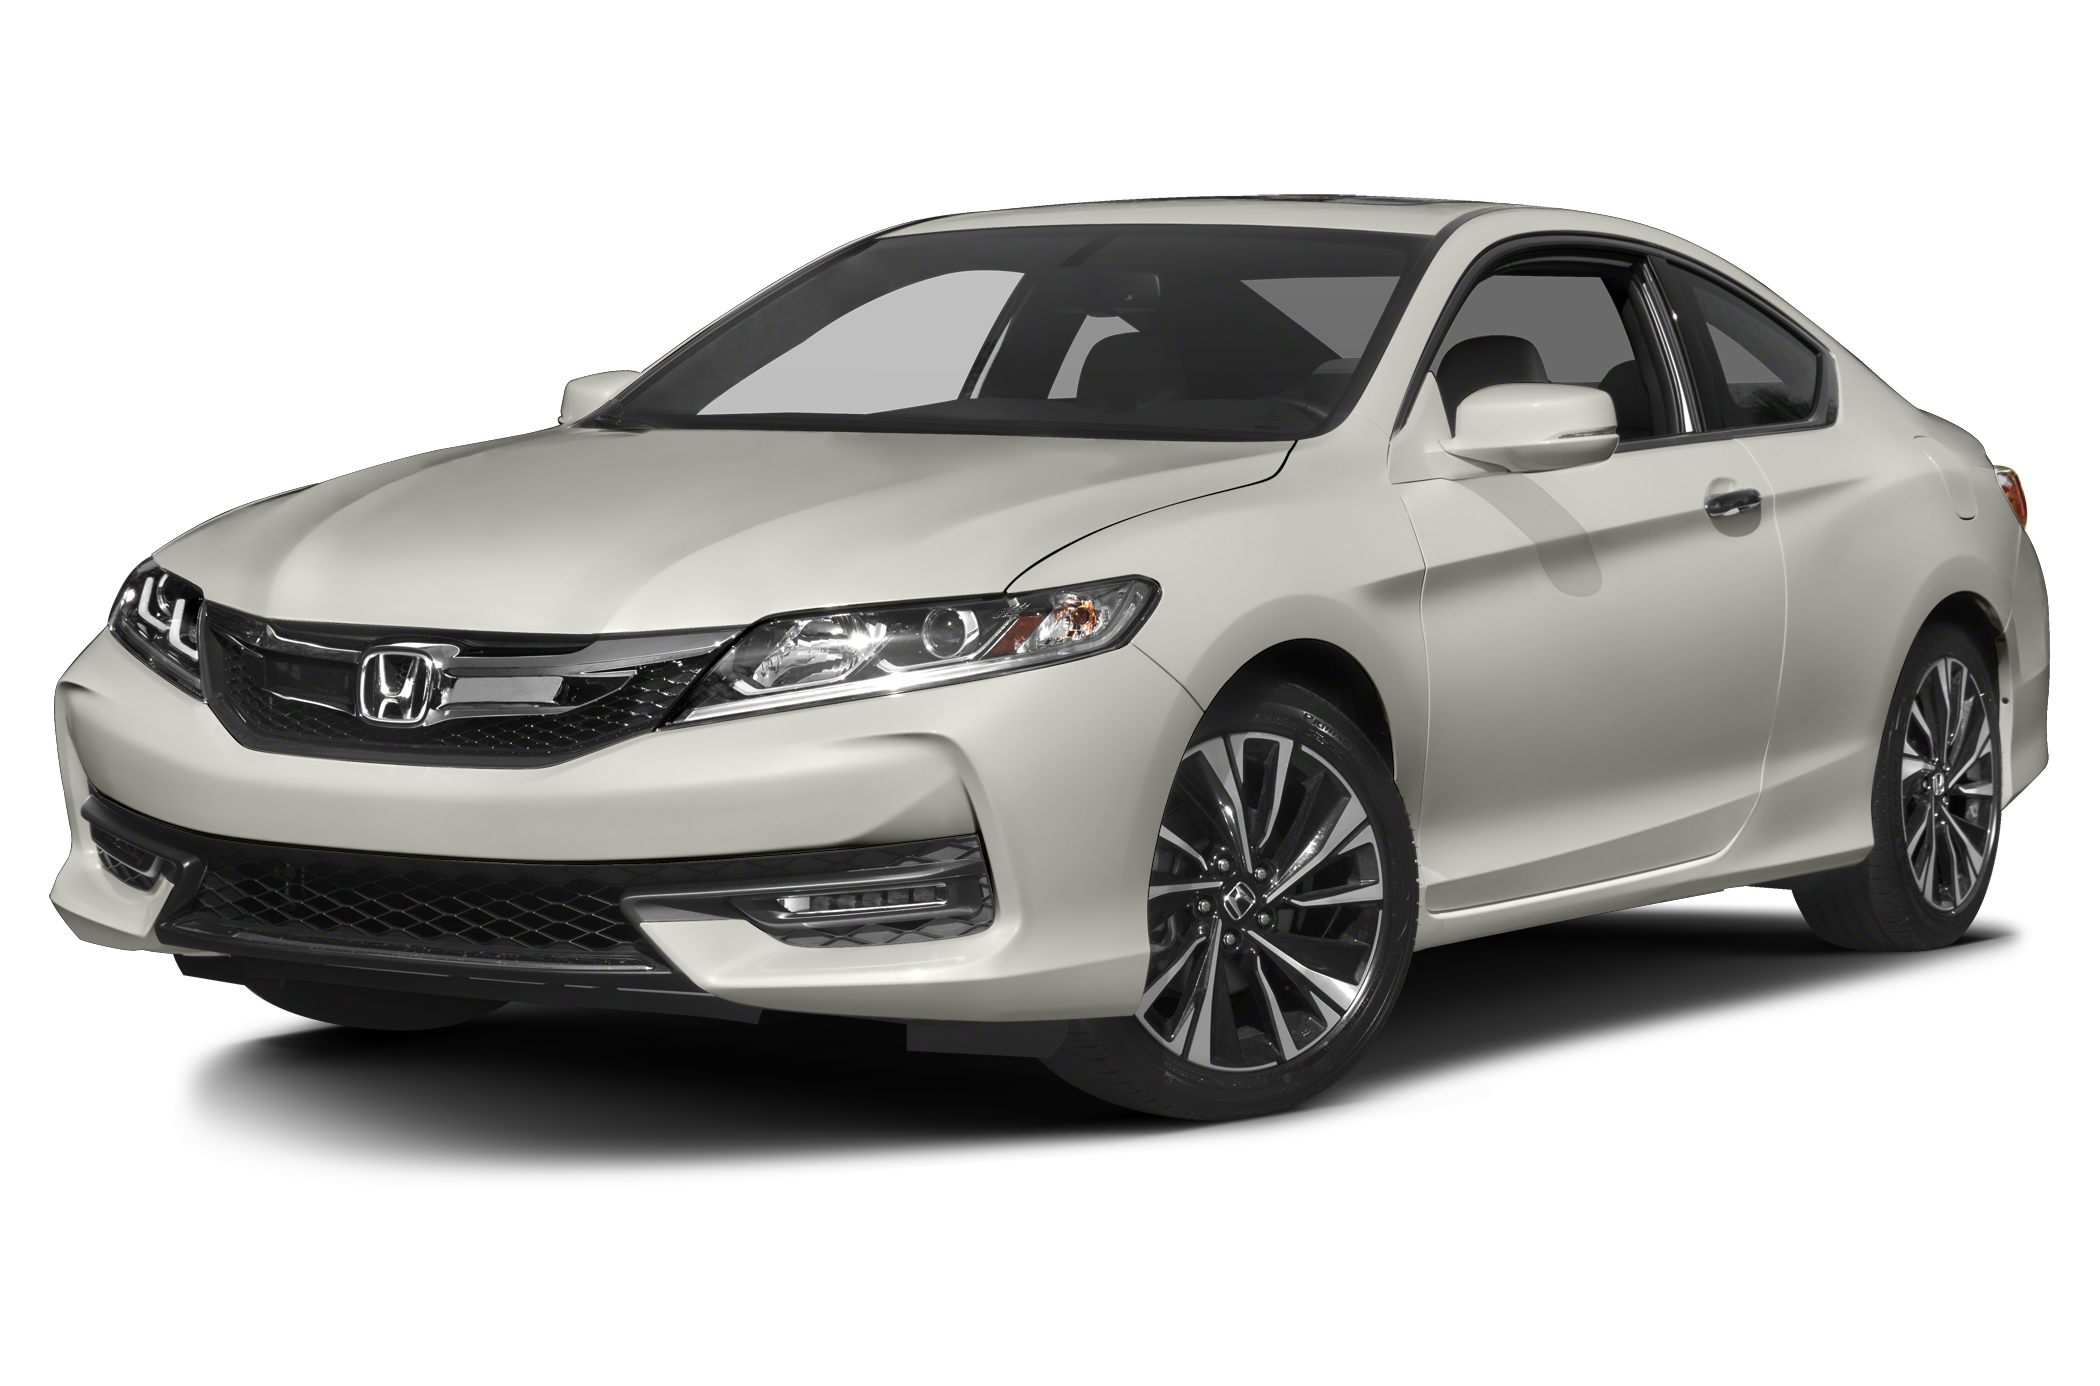 37 All New Mcgrath Honda 2020 N Randall Rd Release Date And Concept